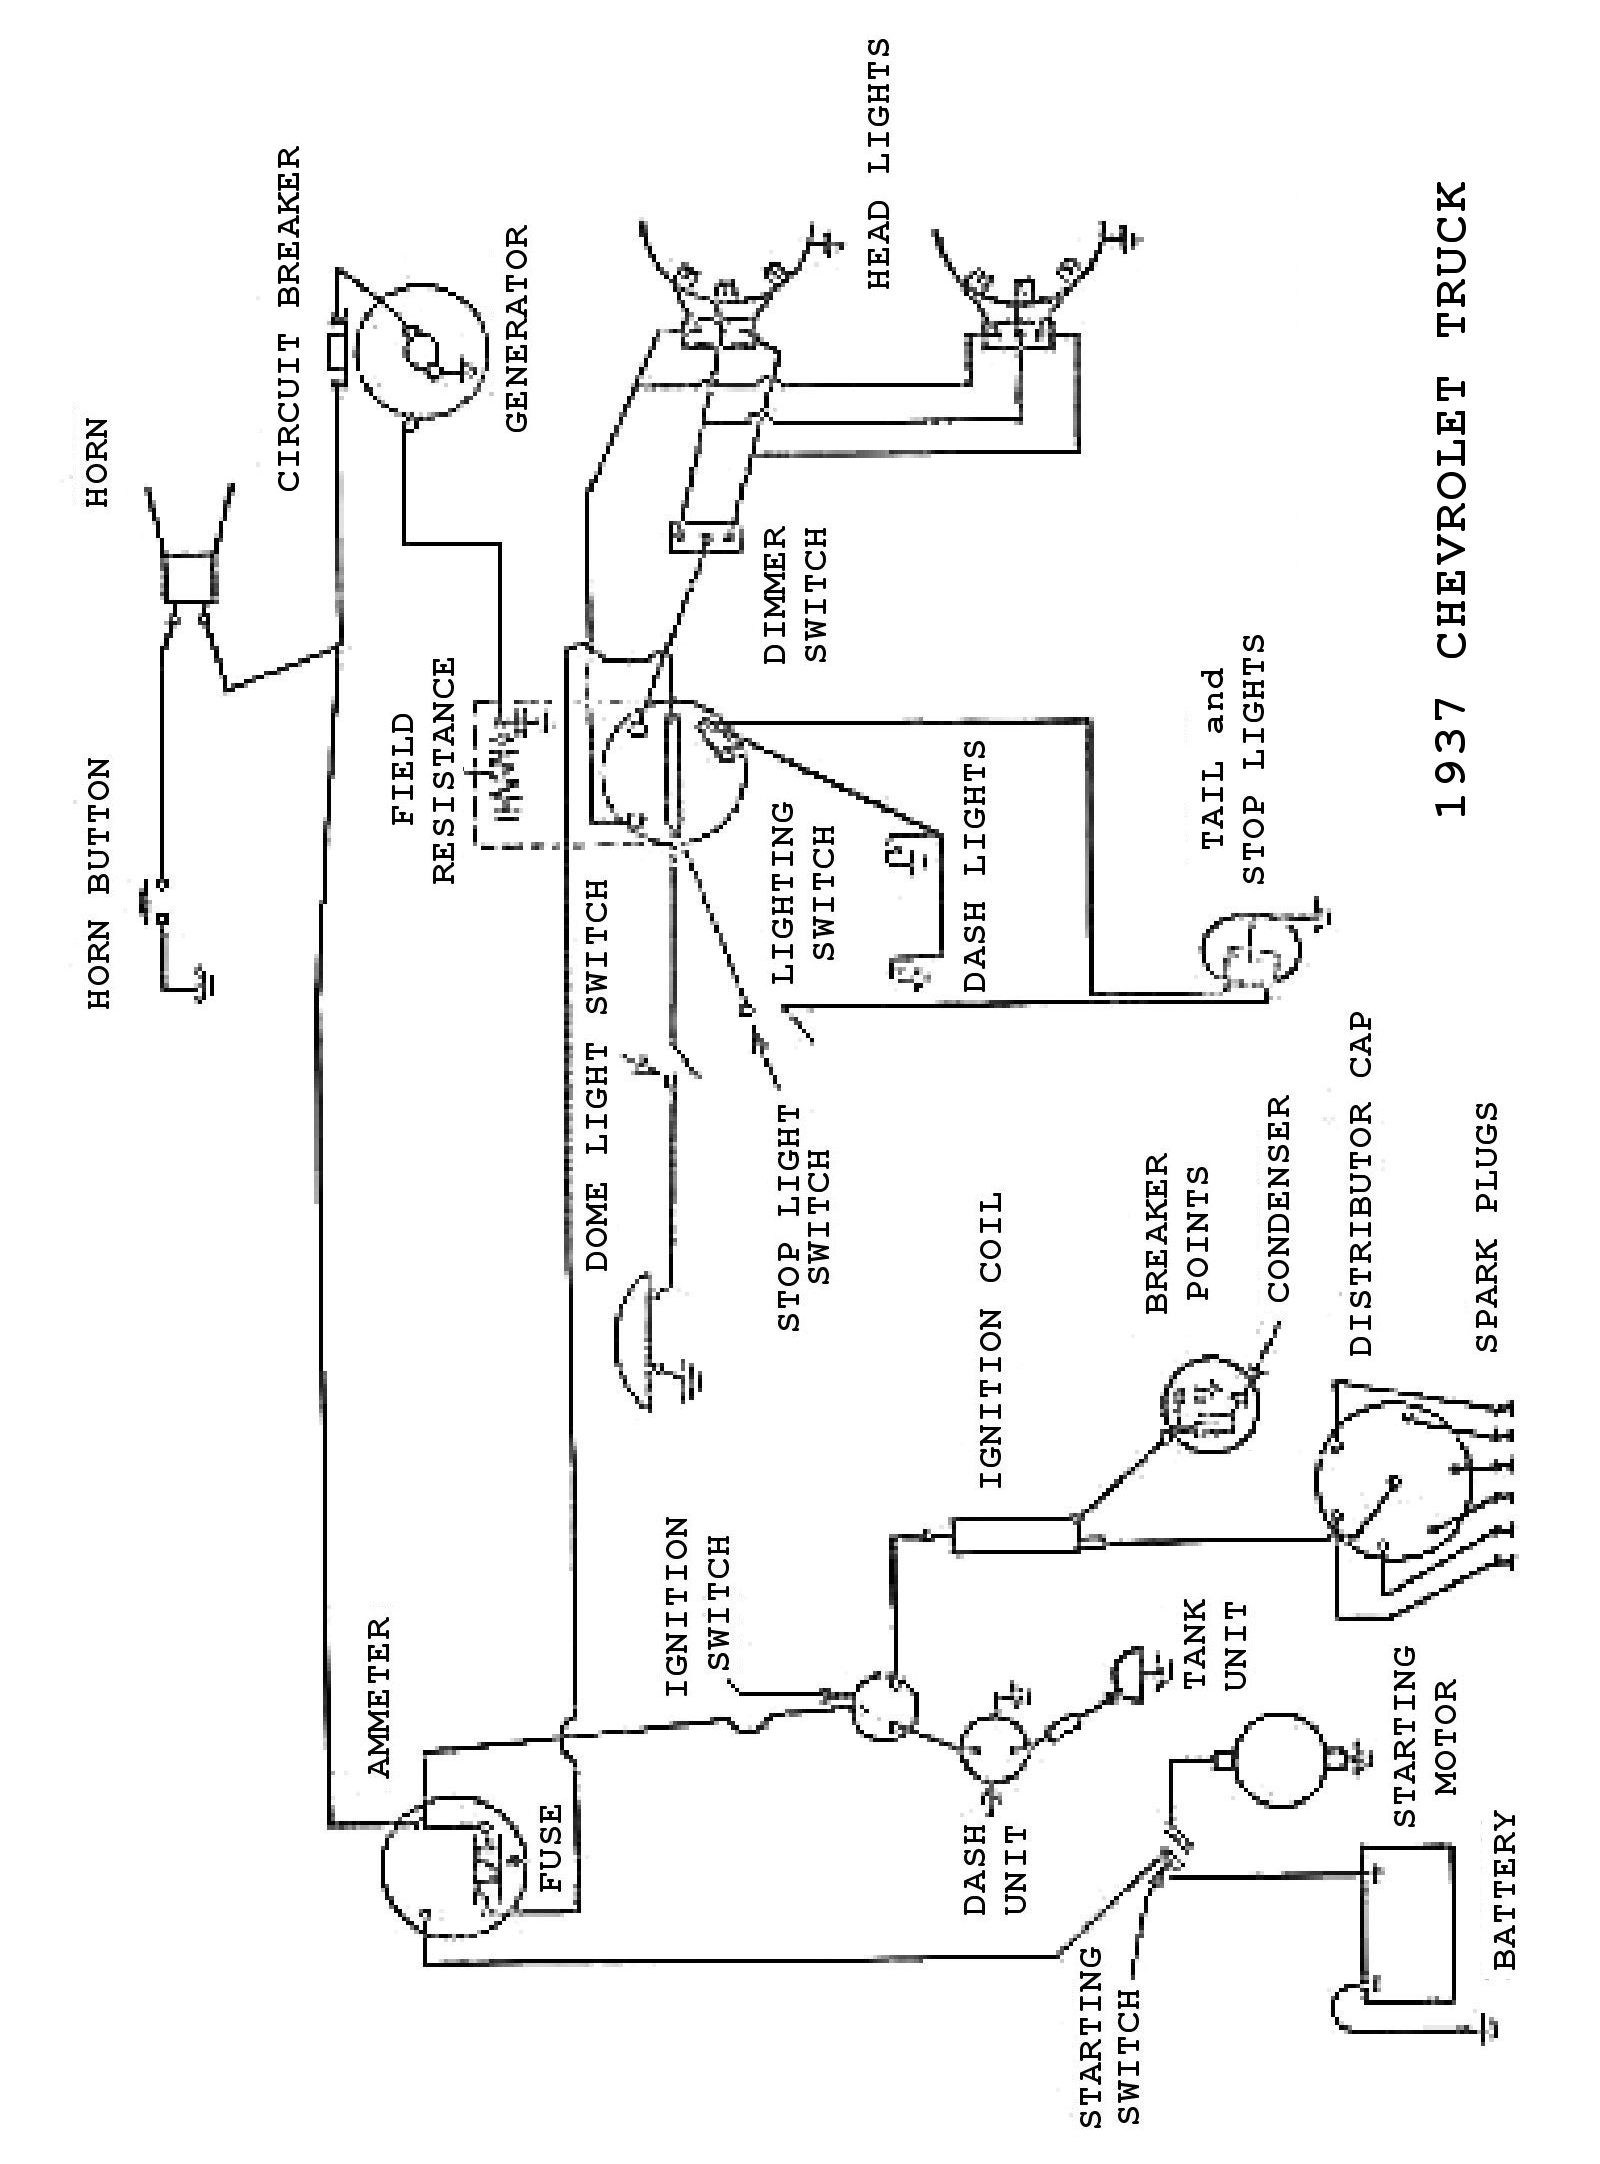 37truck chevy wiring diagrams model a ford generator wiring diagram at bayanpartner.co